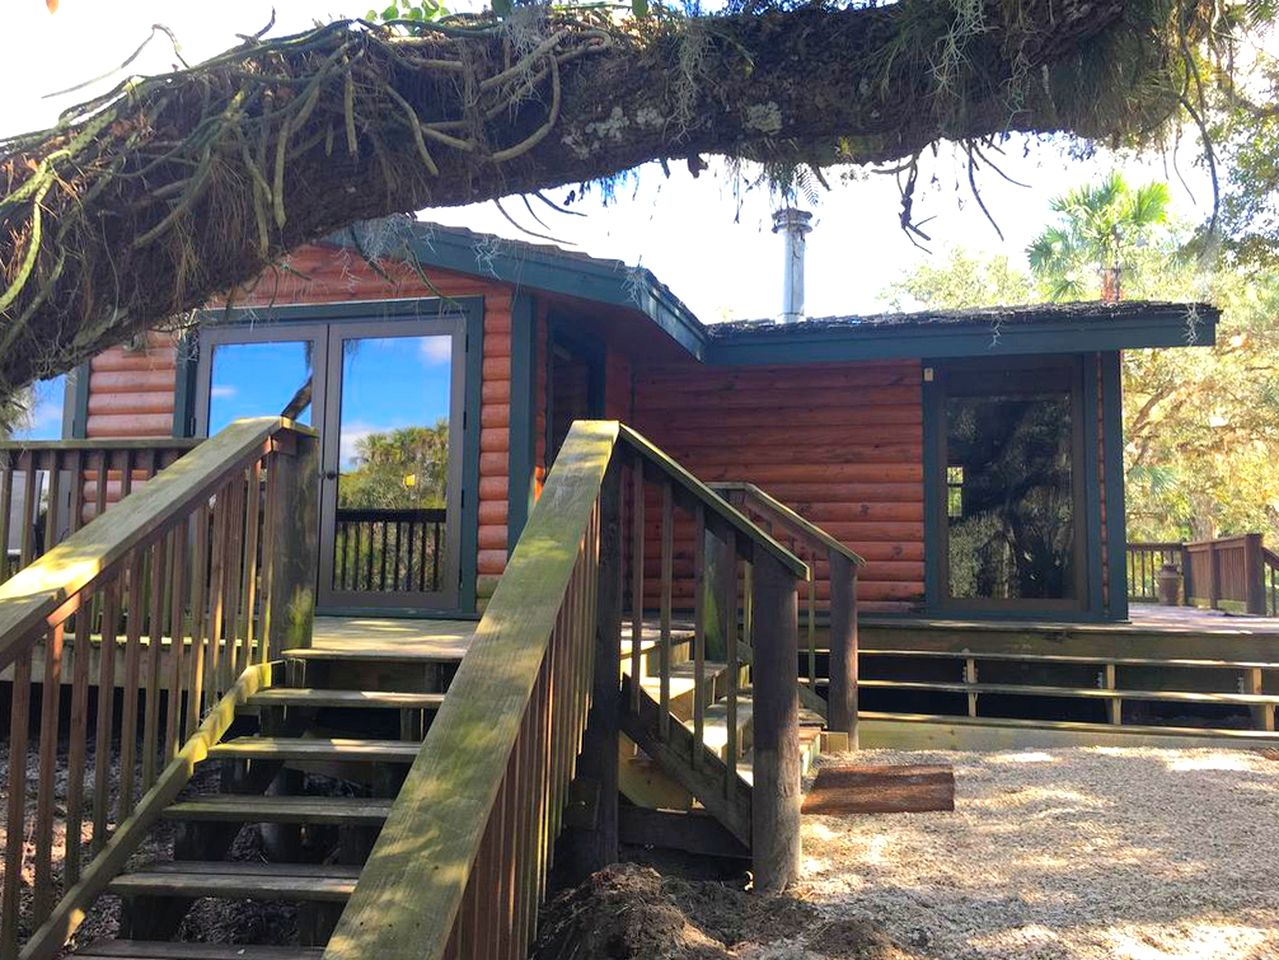 Cabins (Venice, Florida, United States)